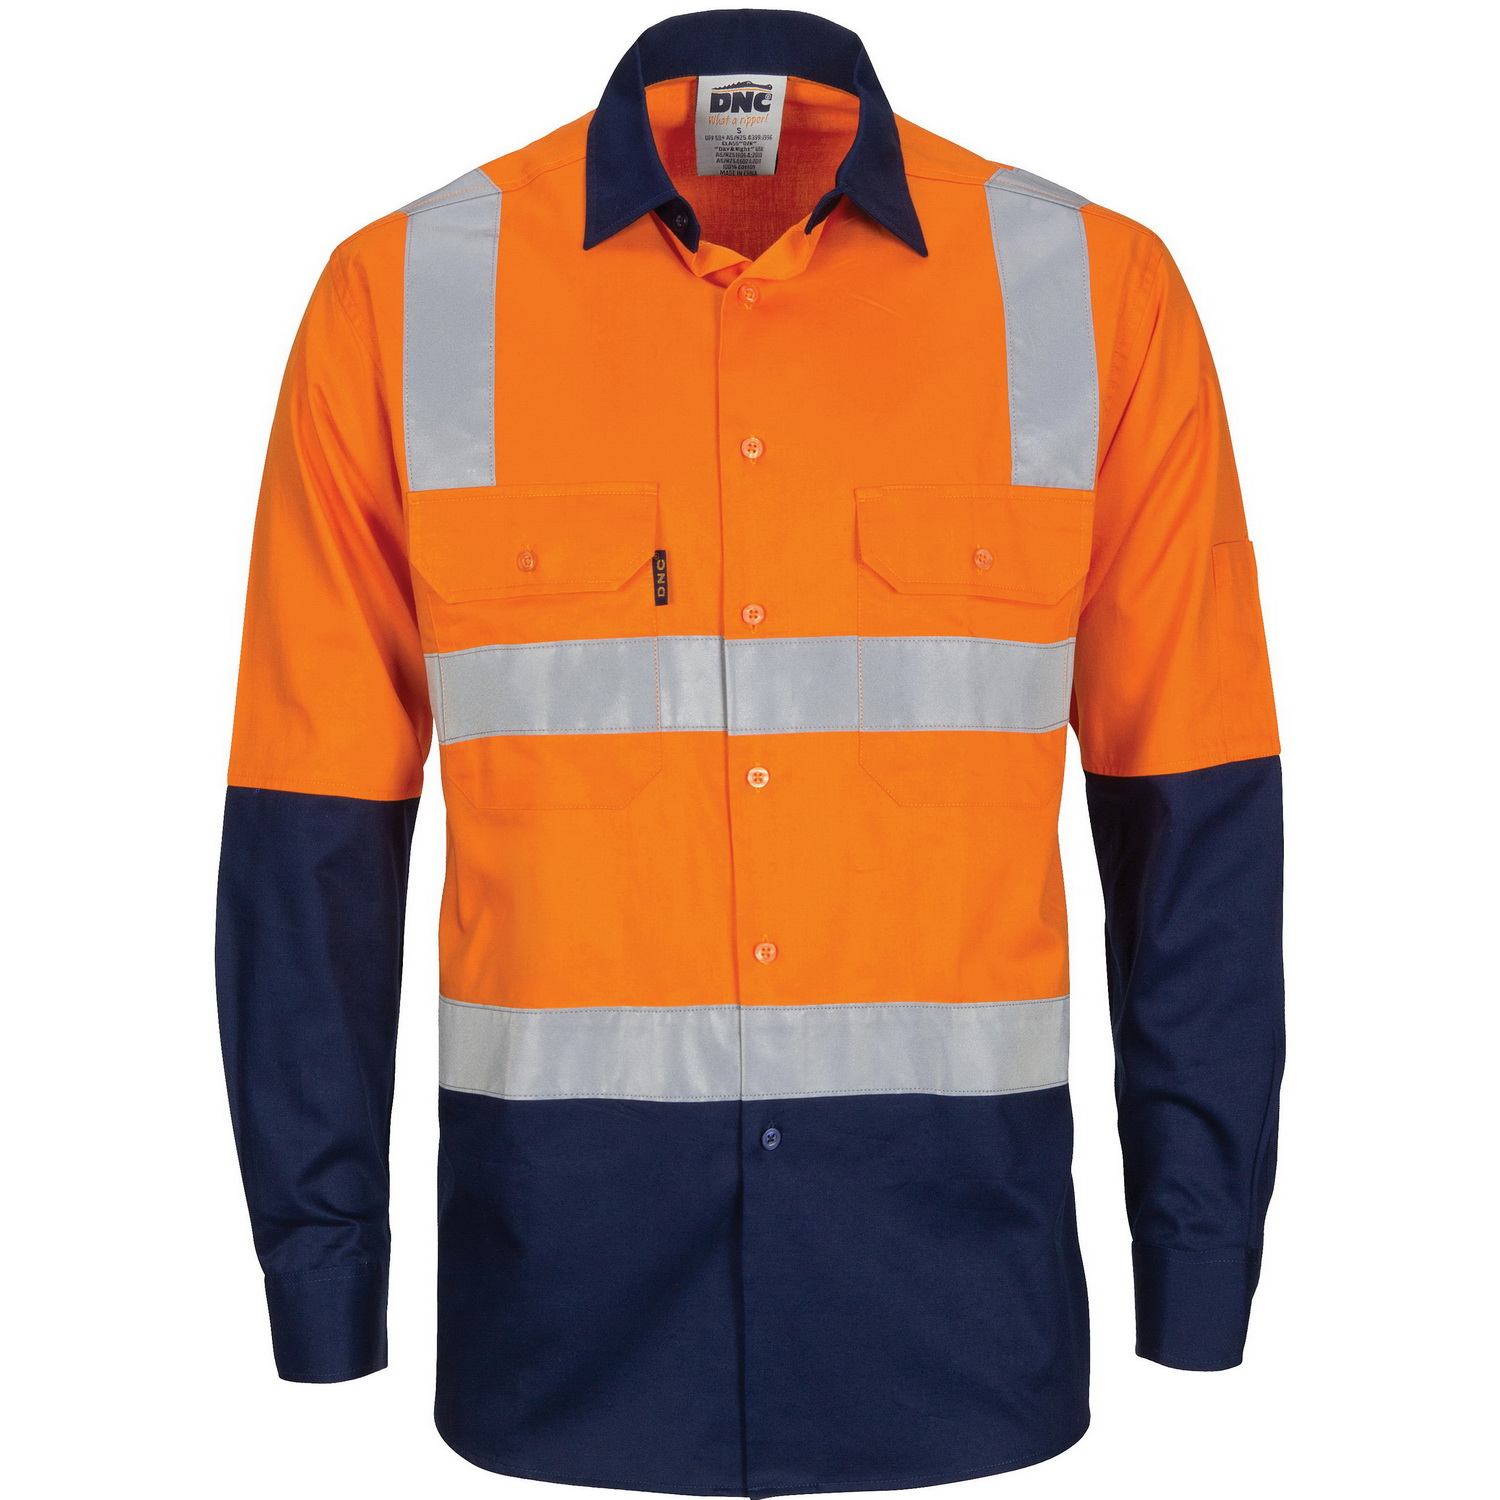 HIVIS Two Tone Cool-Breeze Cotton Shirt with Hoop & Shoulder CSR Reflective Tape - Long Sleeve